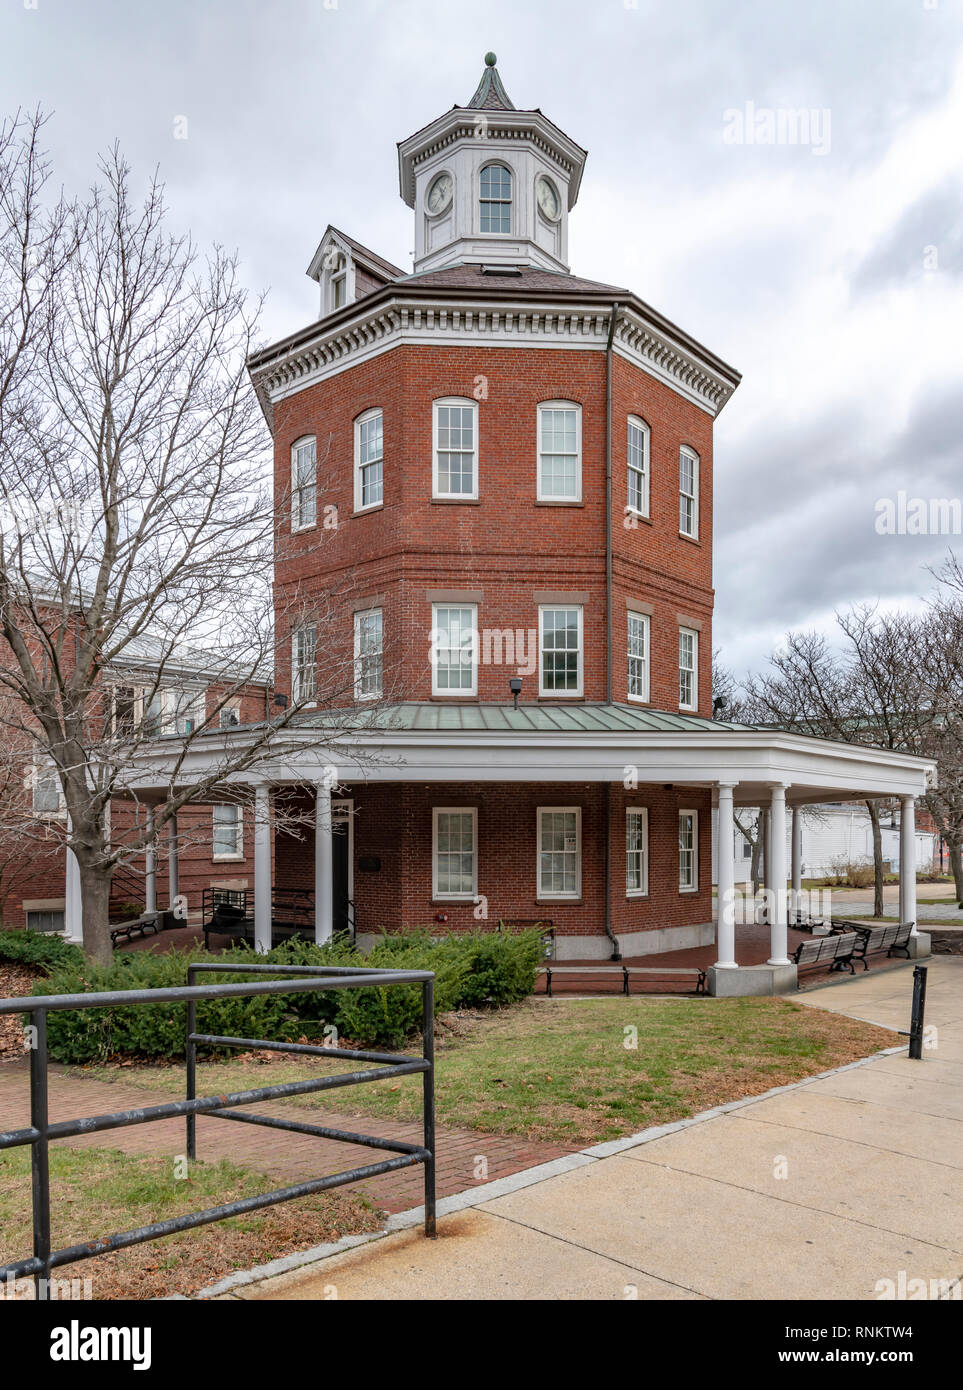 The octagonal Muster House at Boston Navy Yard, Boston, Massachusetts, USA - Stock Image